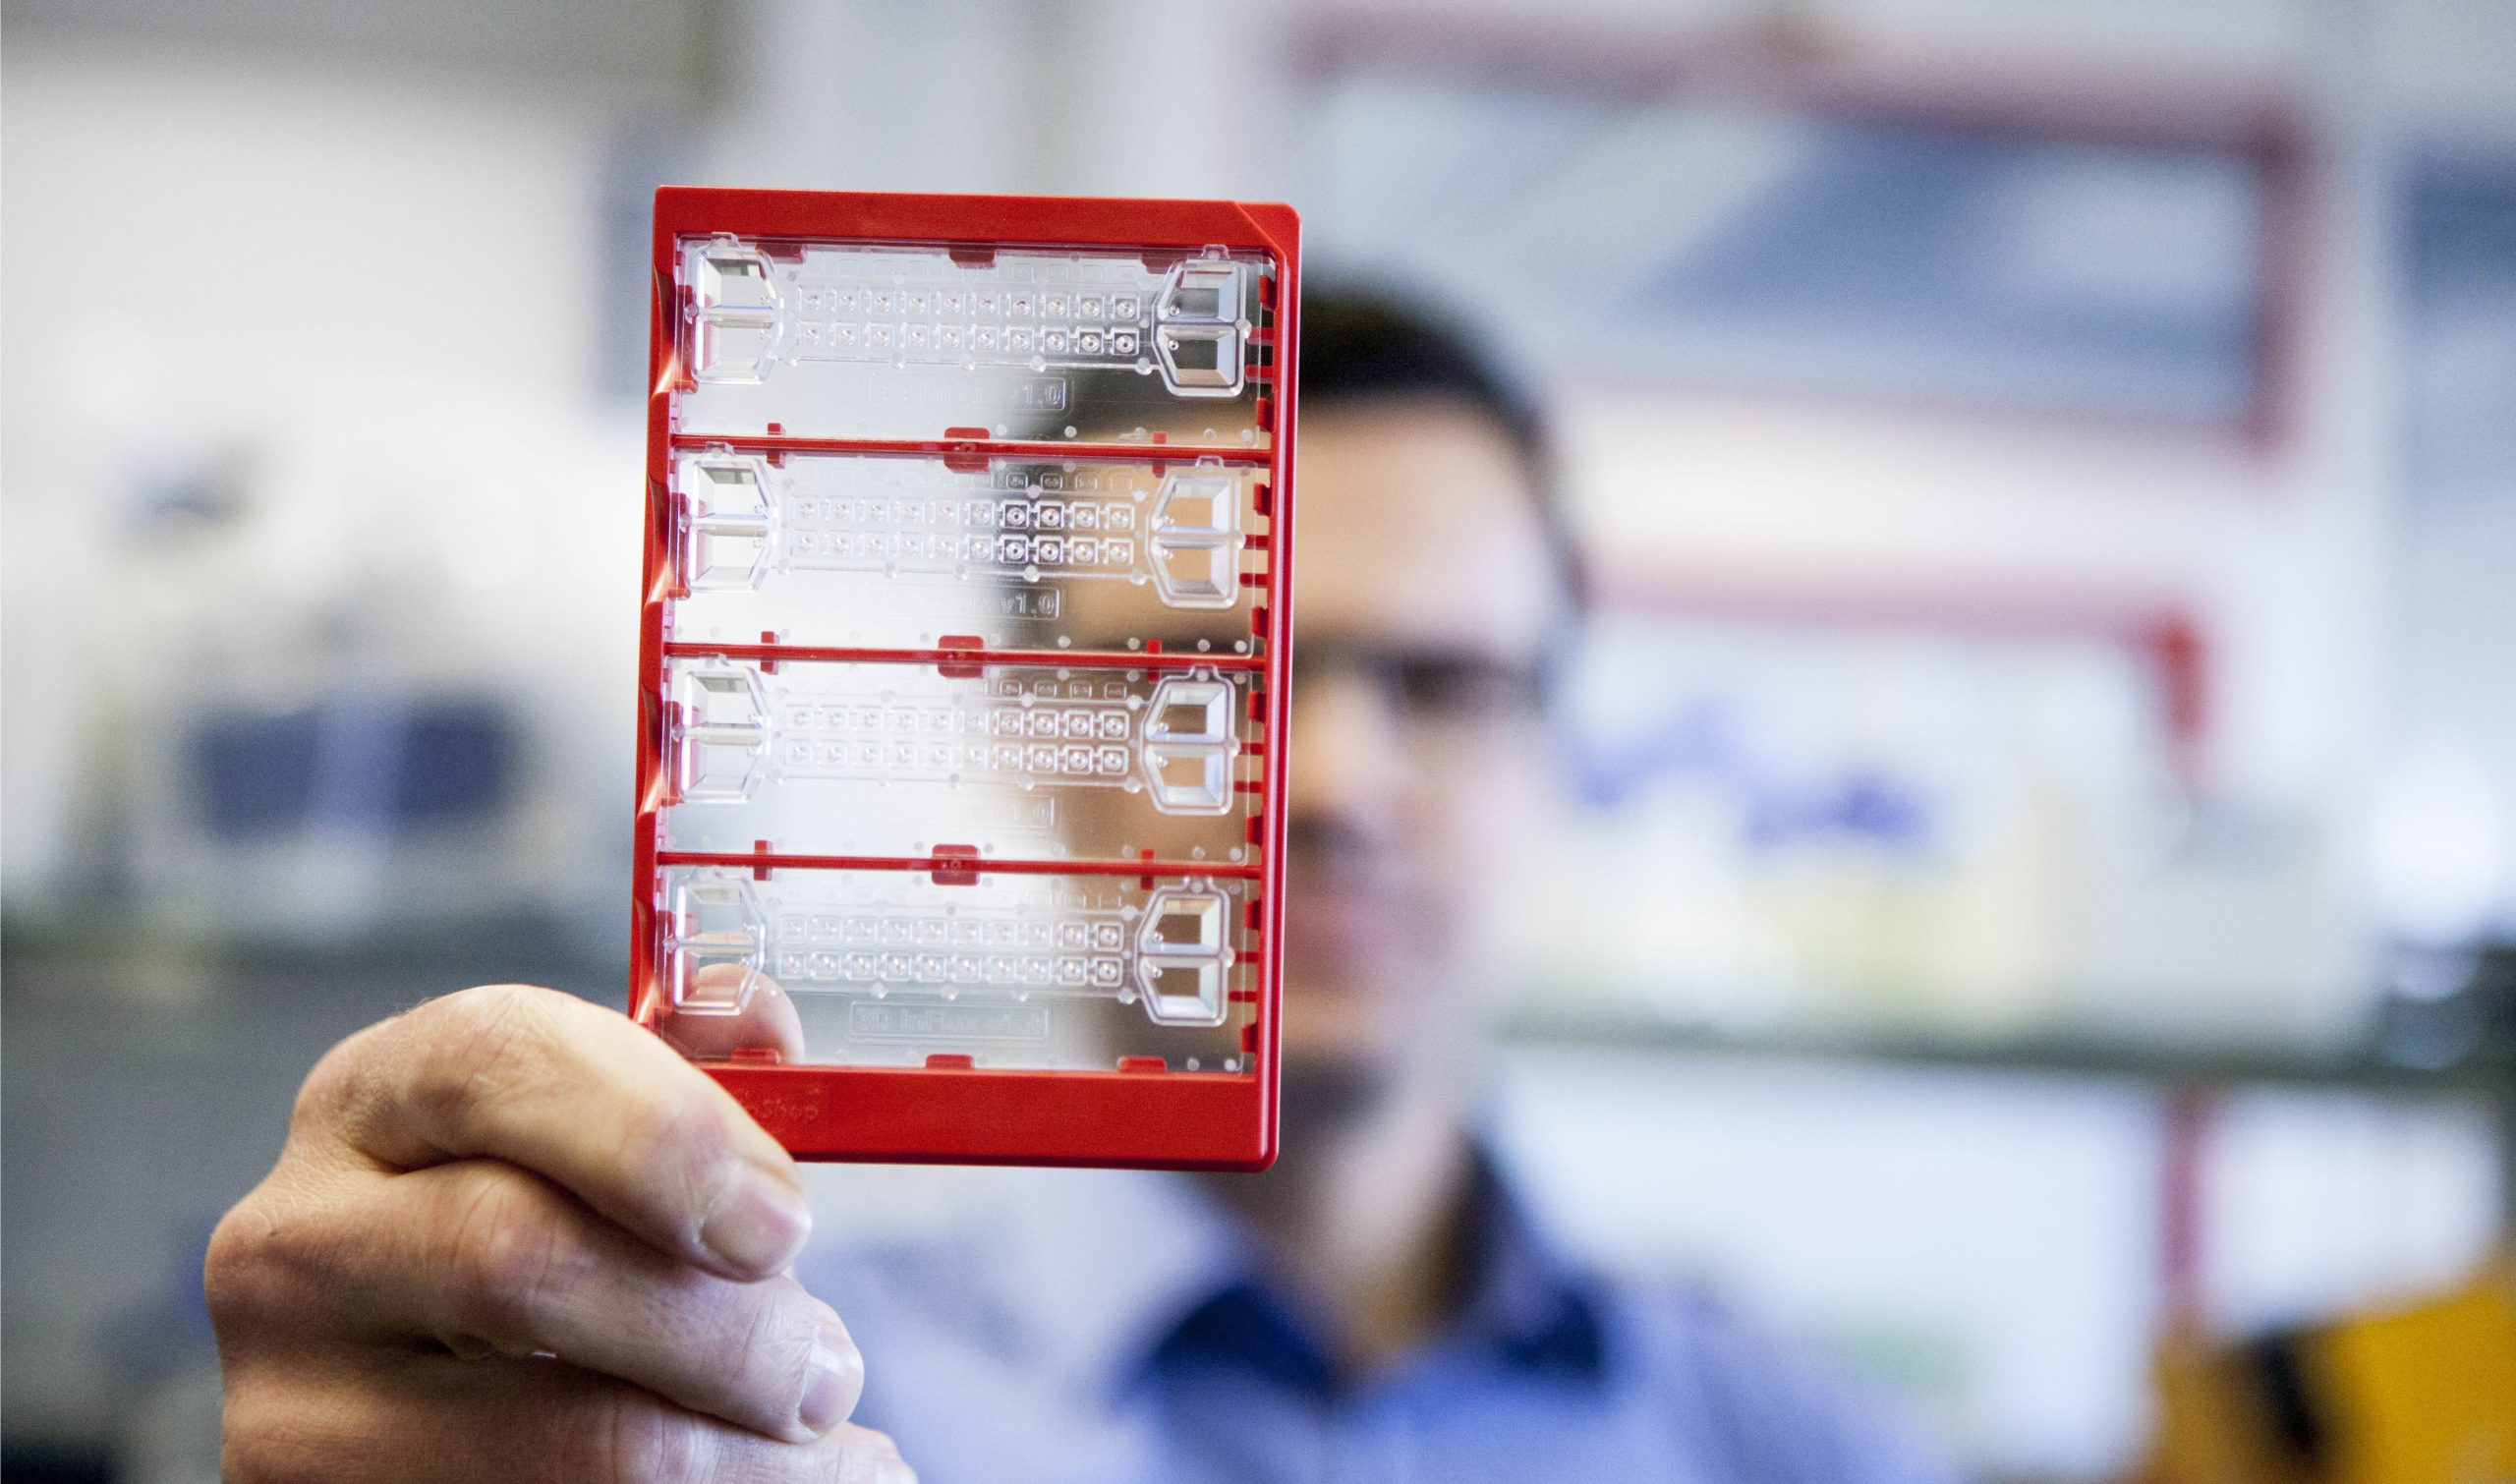 Microfluidic chips are the cornerstone of body on a chip systems